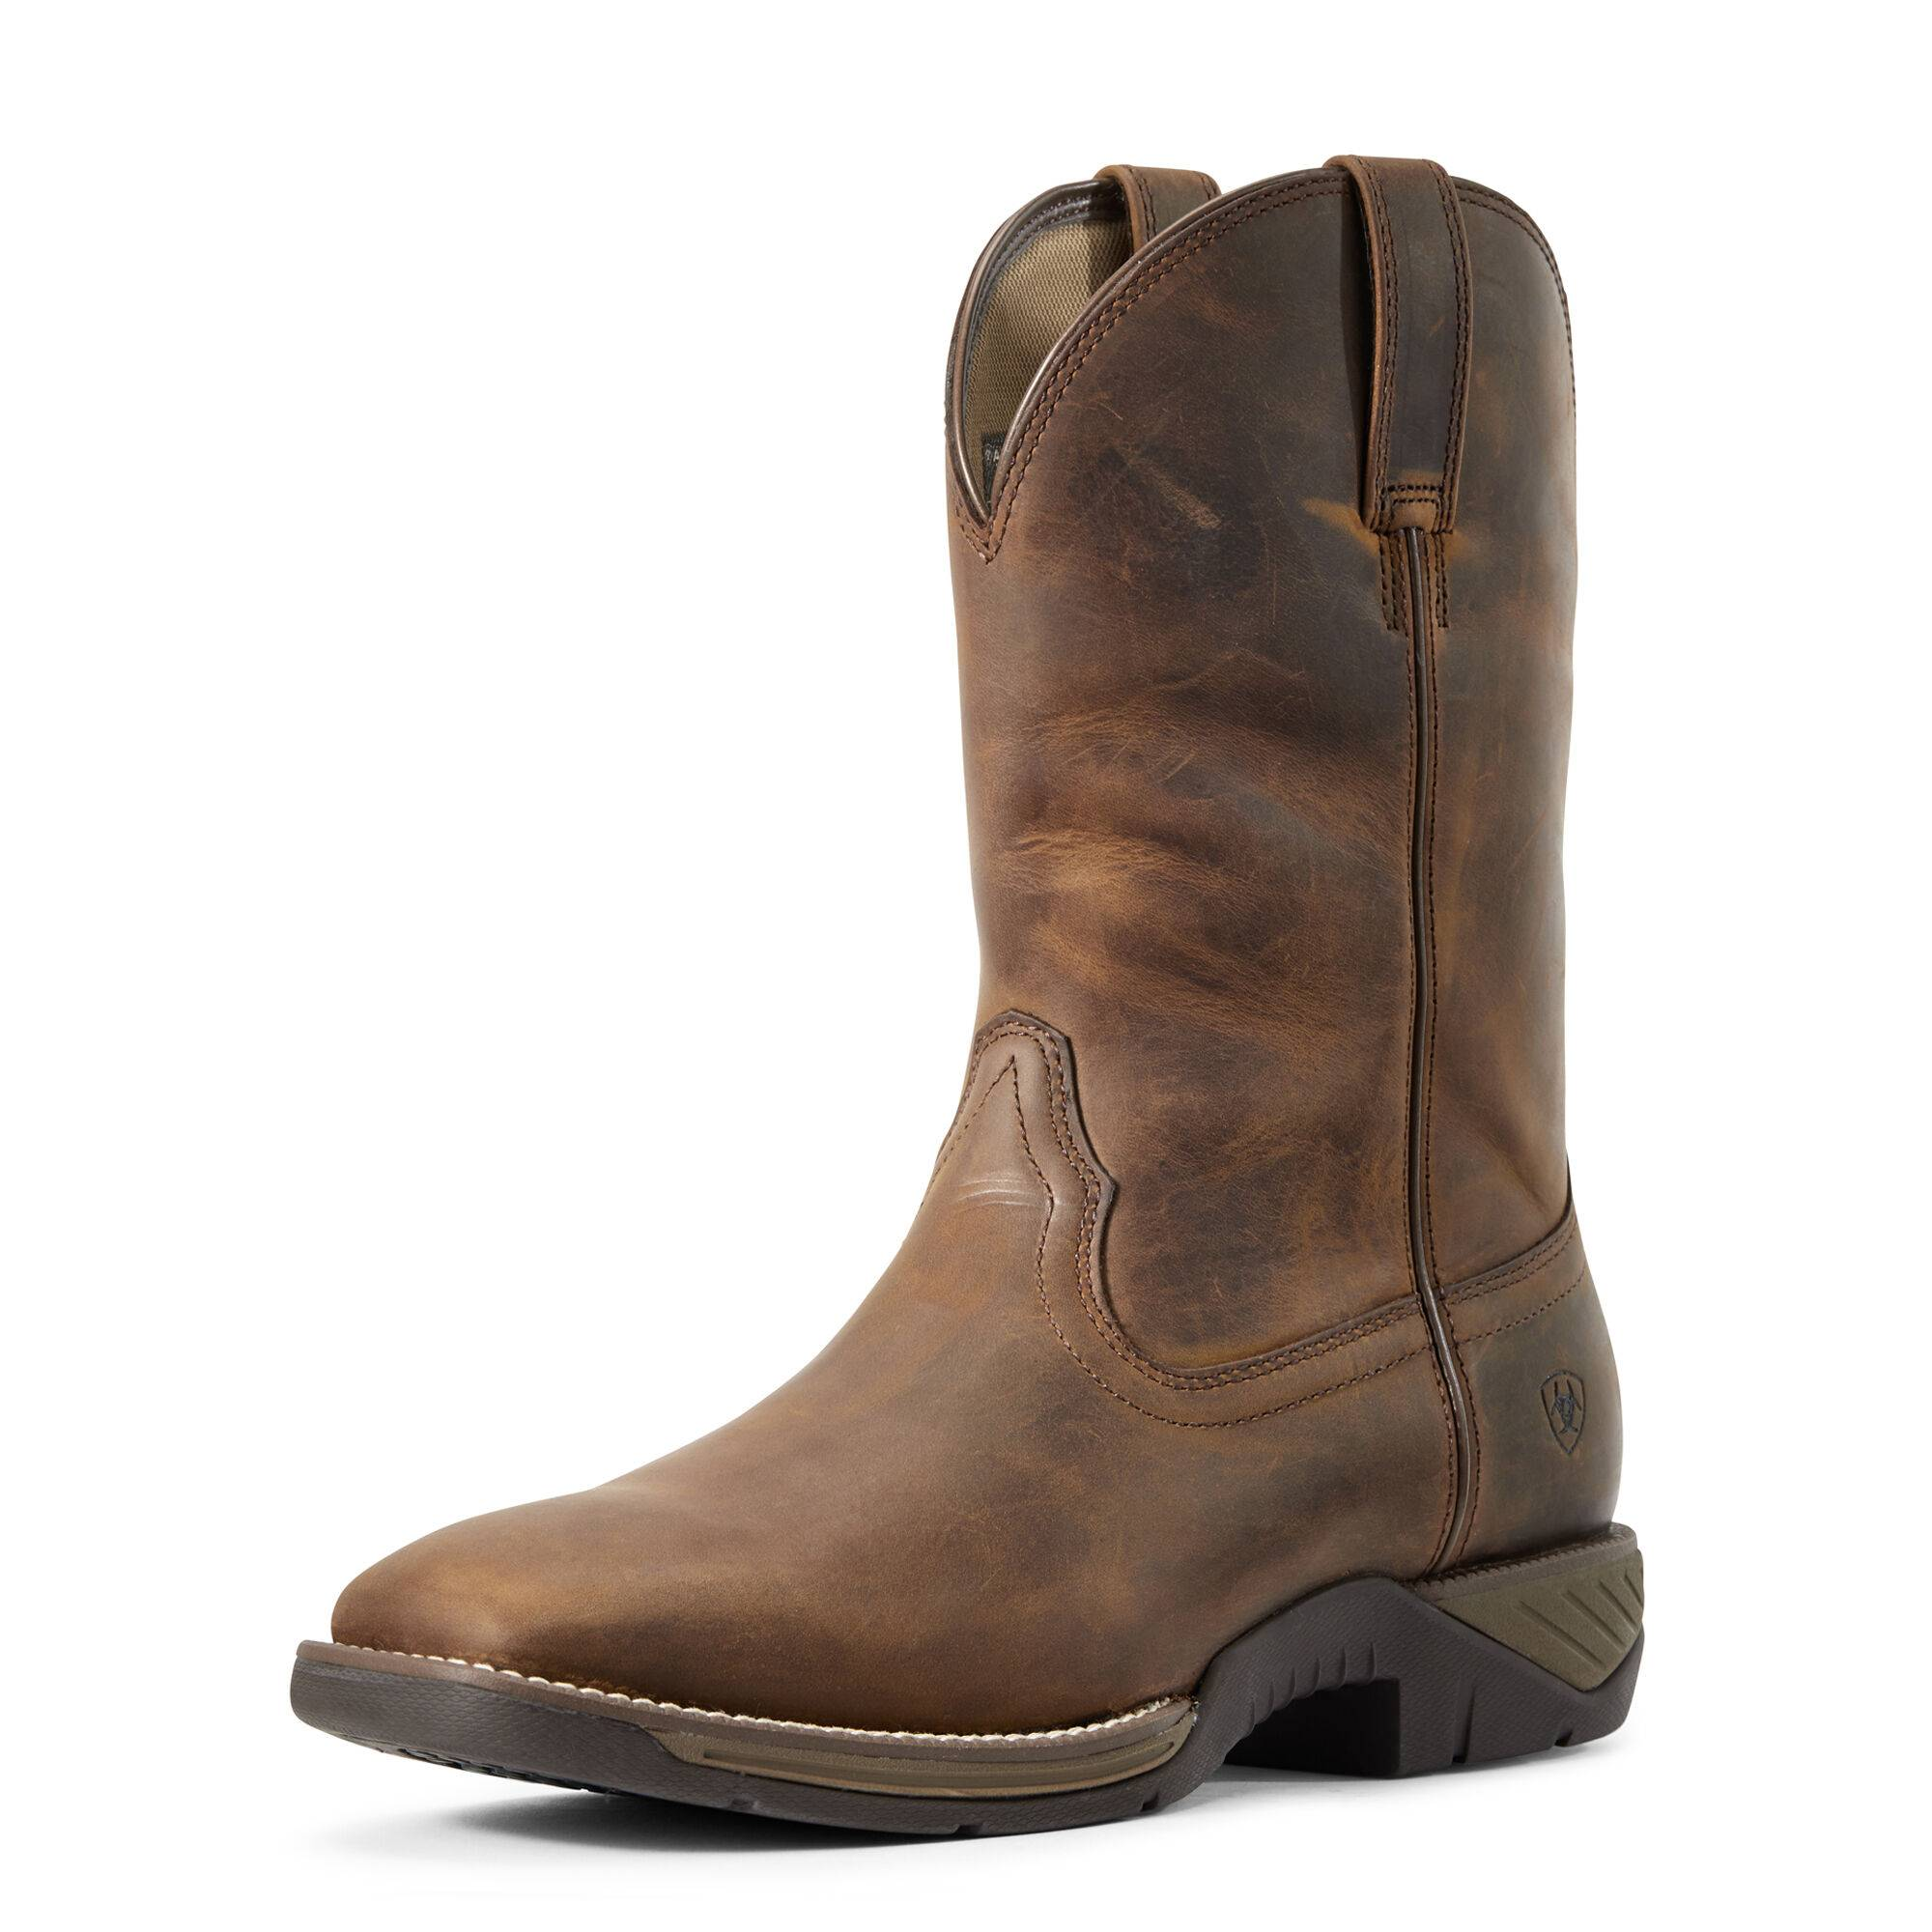 Ariat Men's Ranch Work Western Boots in Distressed Brown Leather, D Medium Width, Size 11, by Ariat